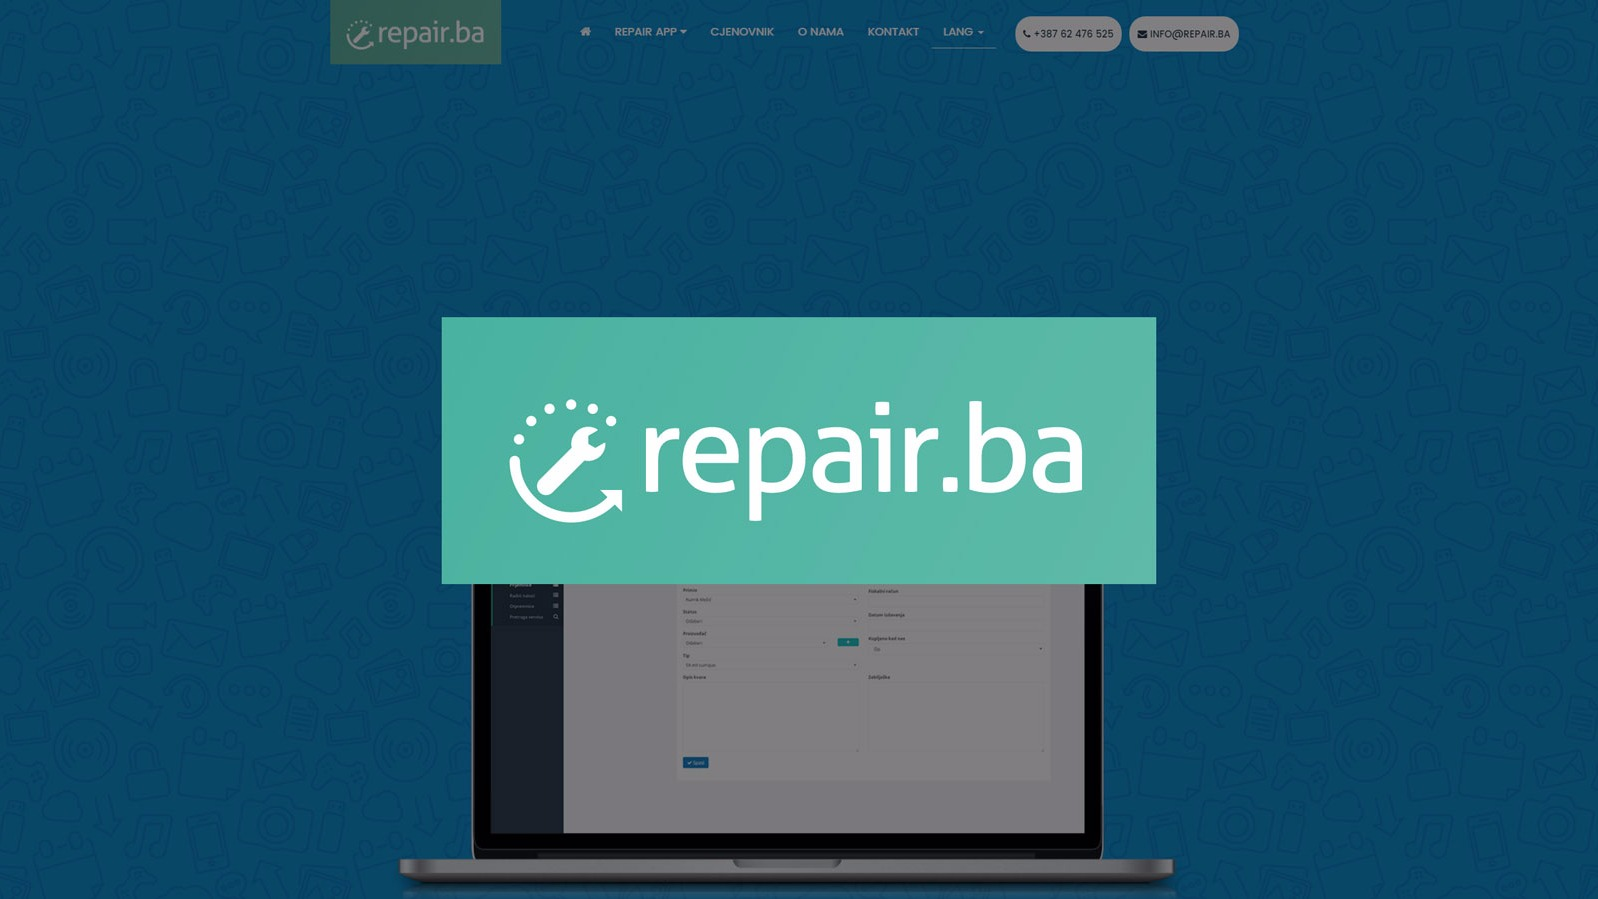 Repair.ba startup - Application for servicing workers